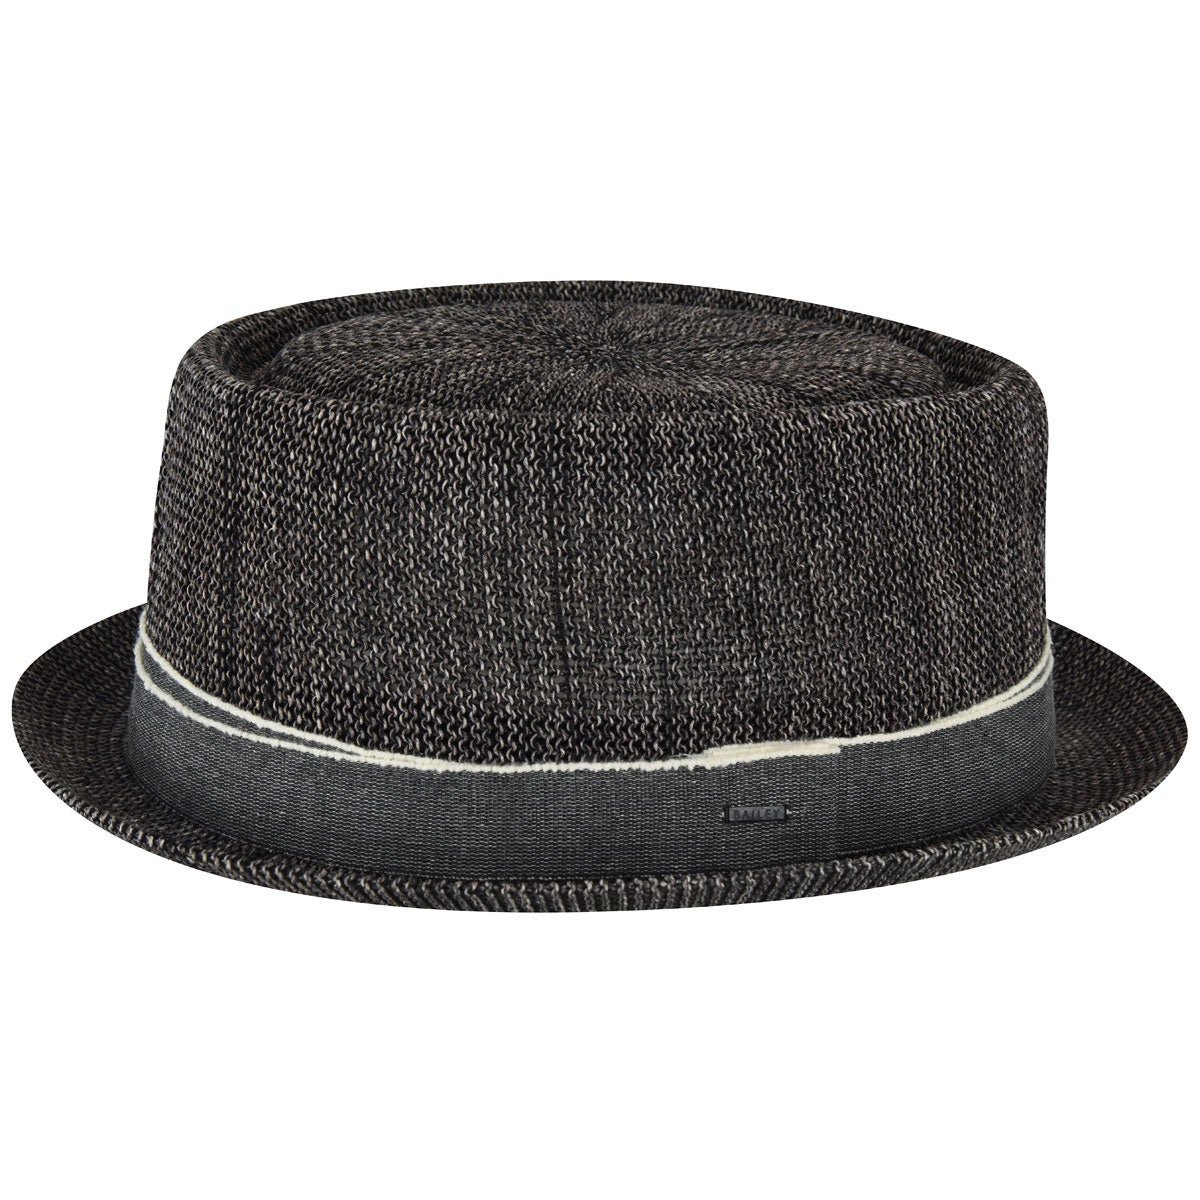 1960s – 70s Style Men's Hats Runkle Straw Pork Pie $48.00 AT vintagedancer.com